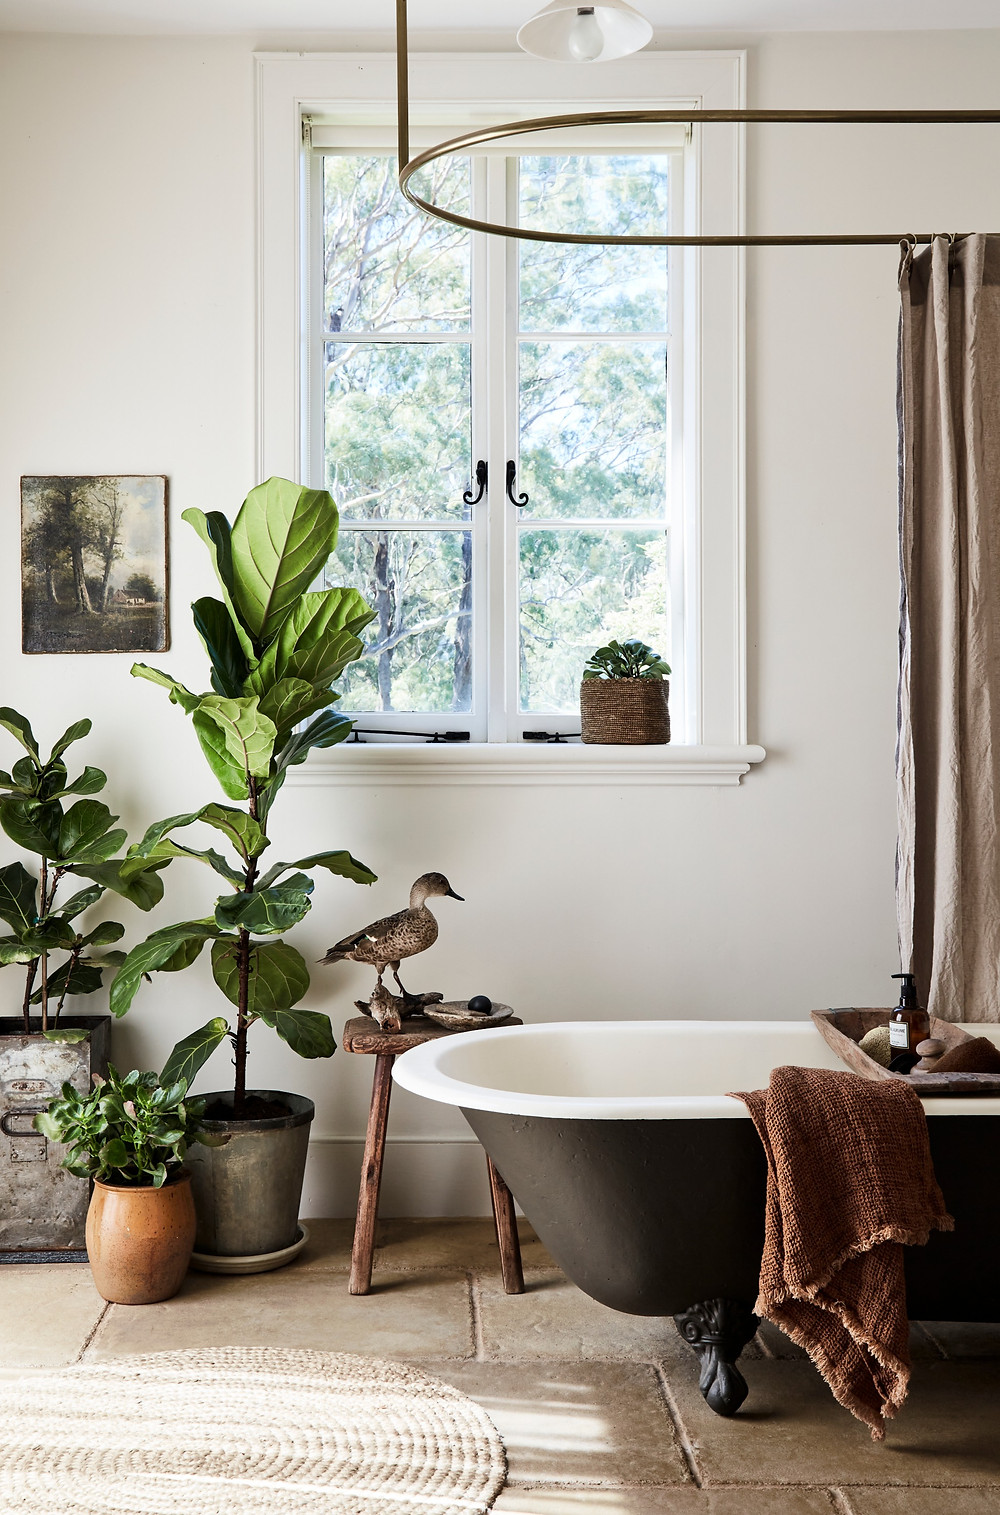 Light filled vintage style bathroom with a vintage clawfoot tub painted black and stone floors